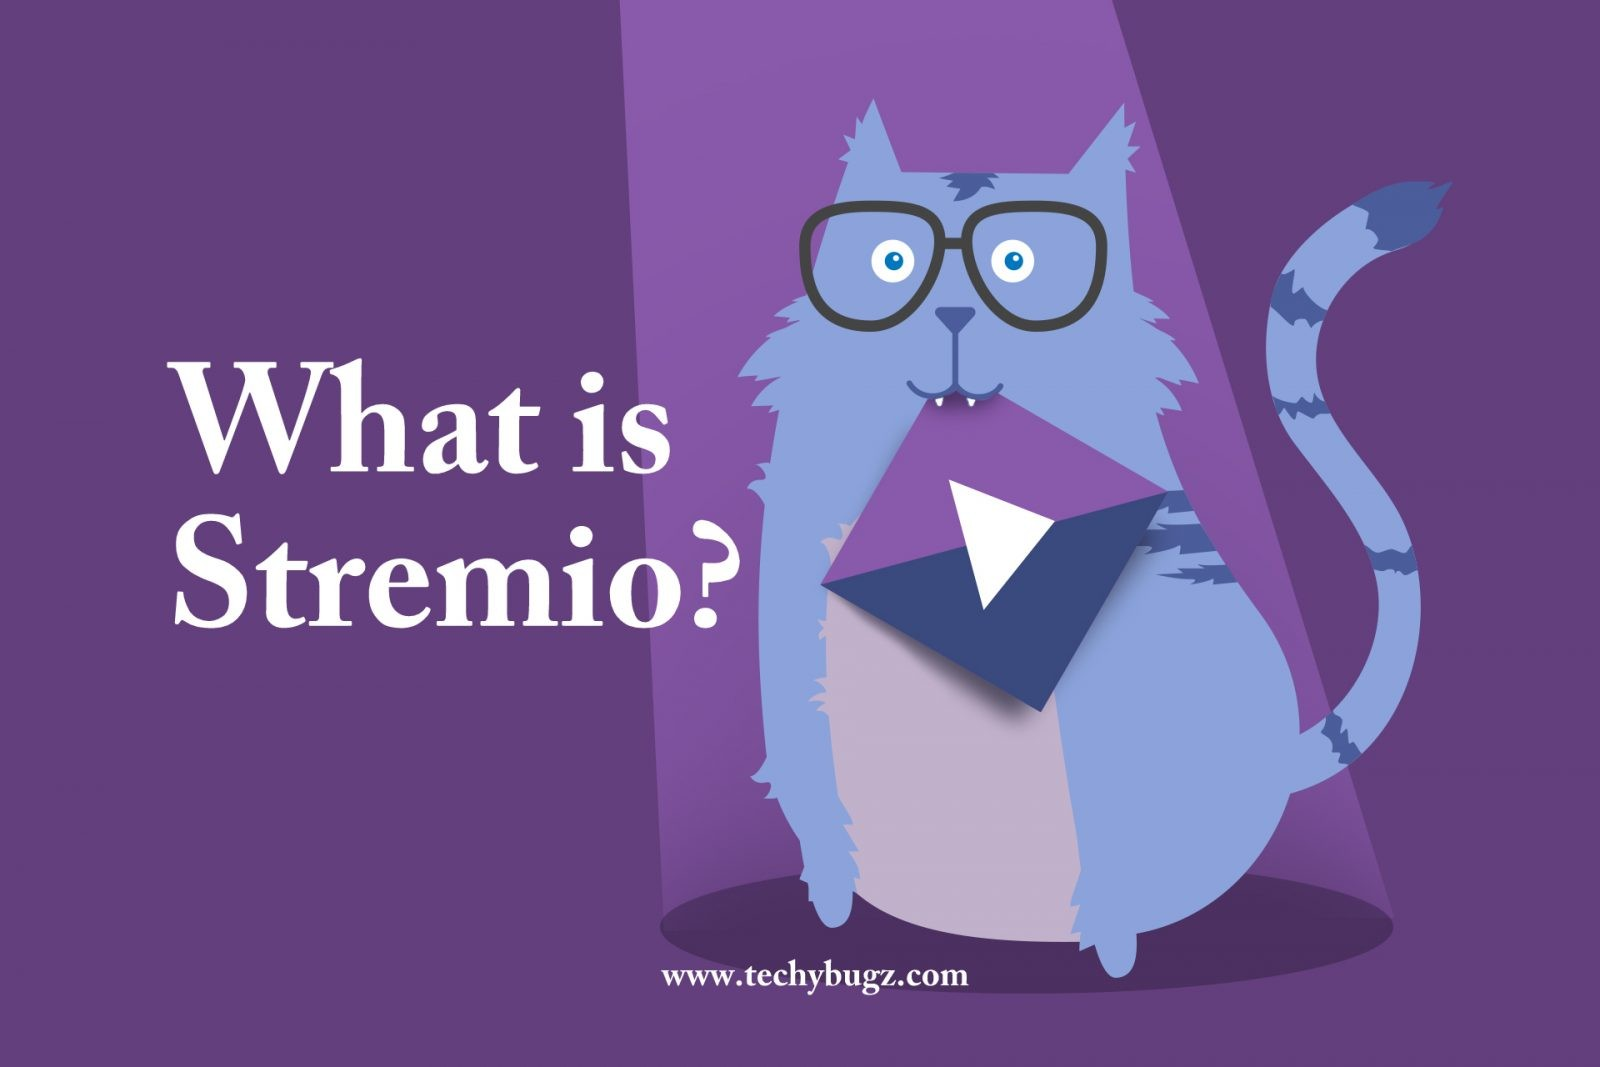 What is Stremio?